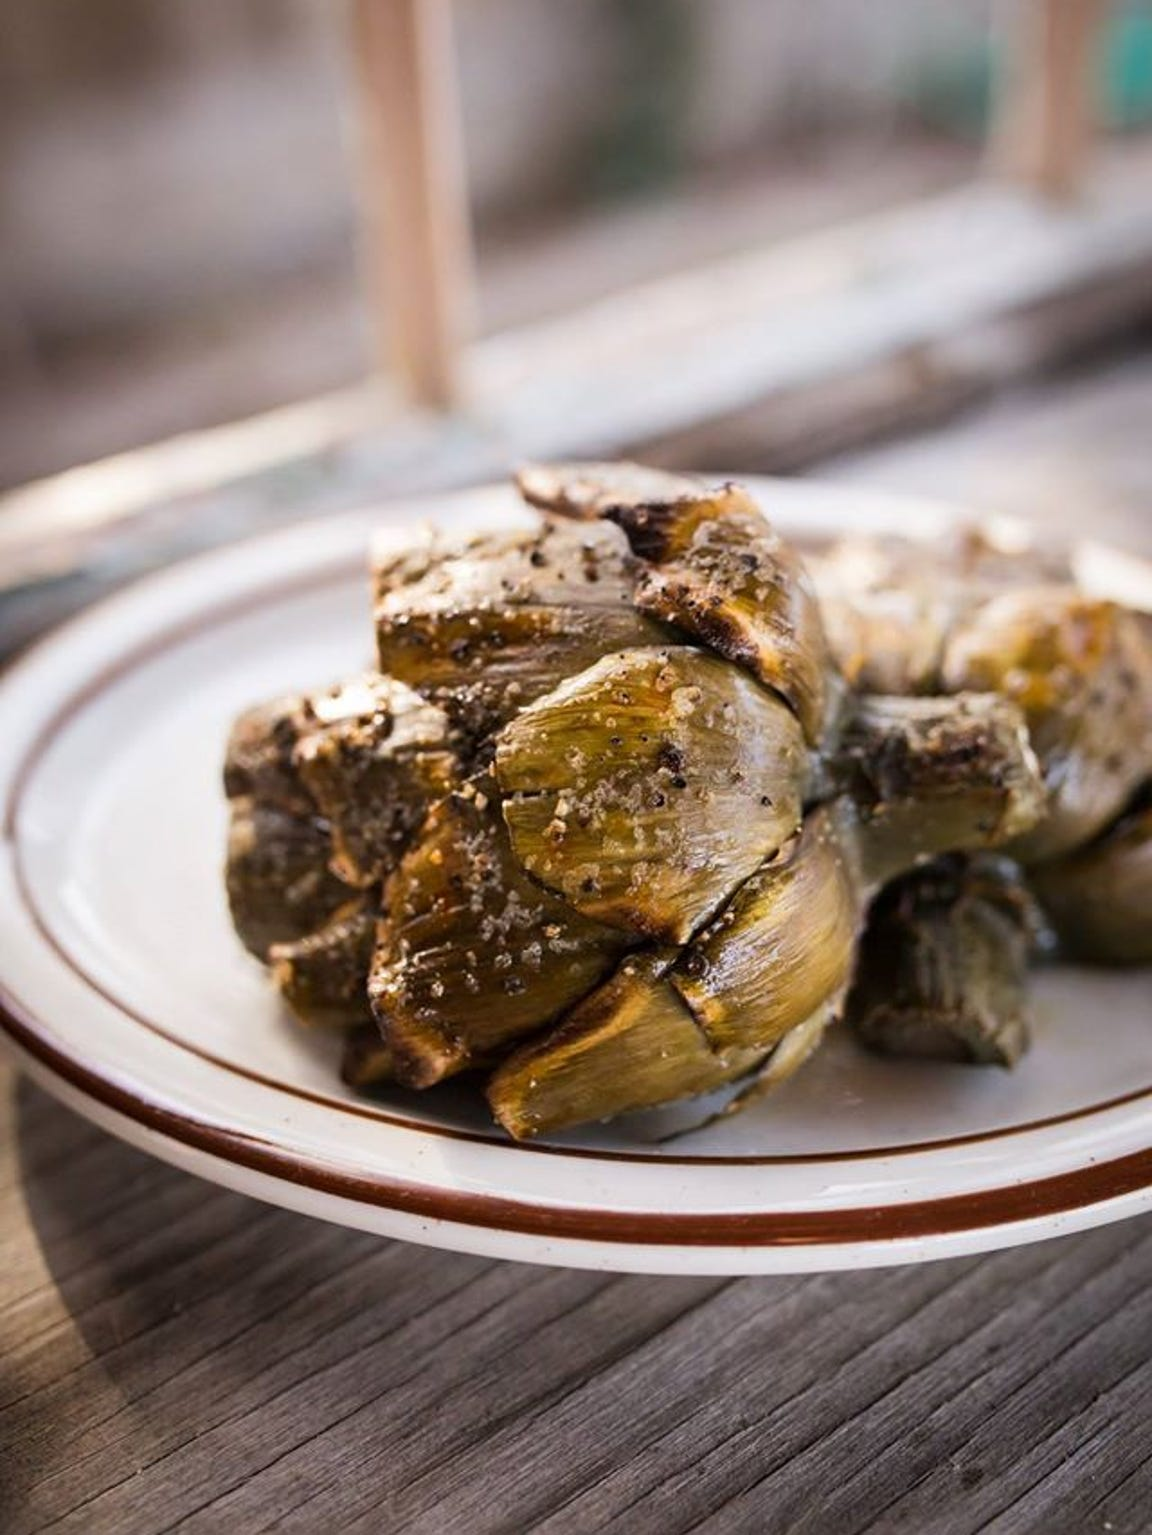 The Hitching Post grilled artichokes